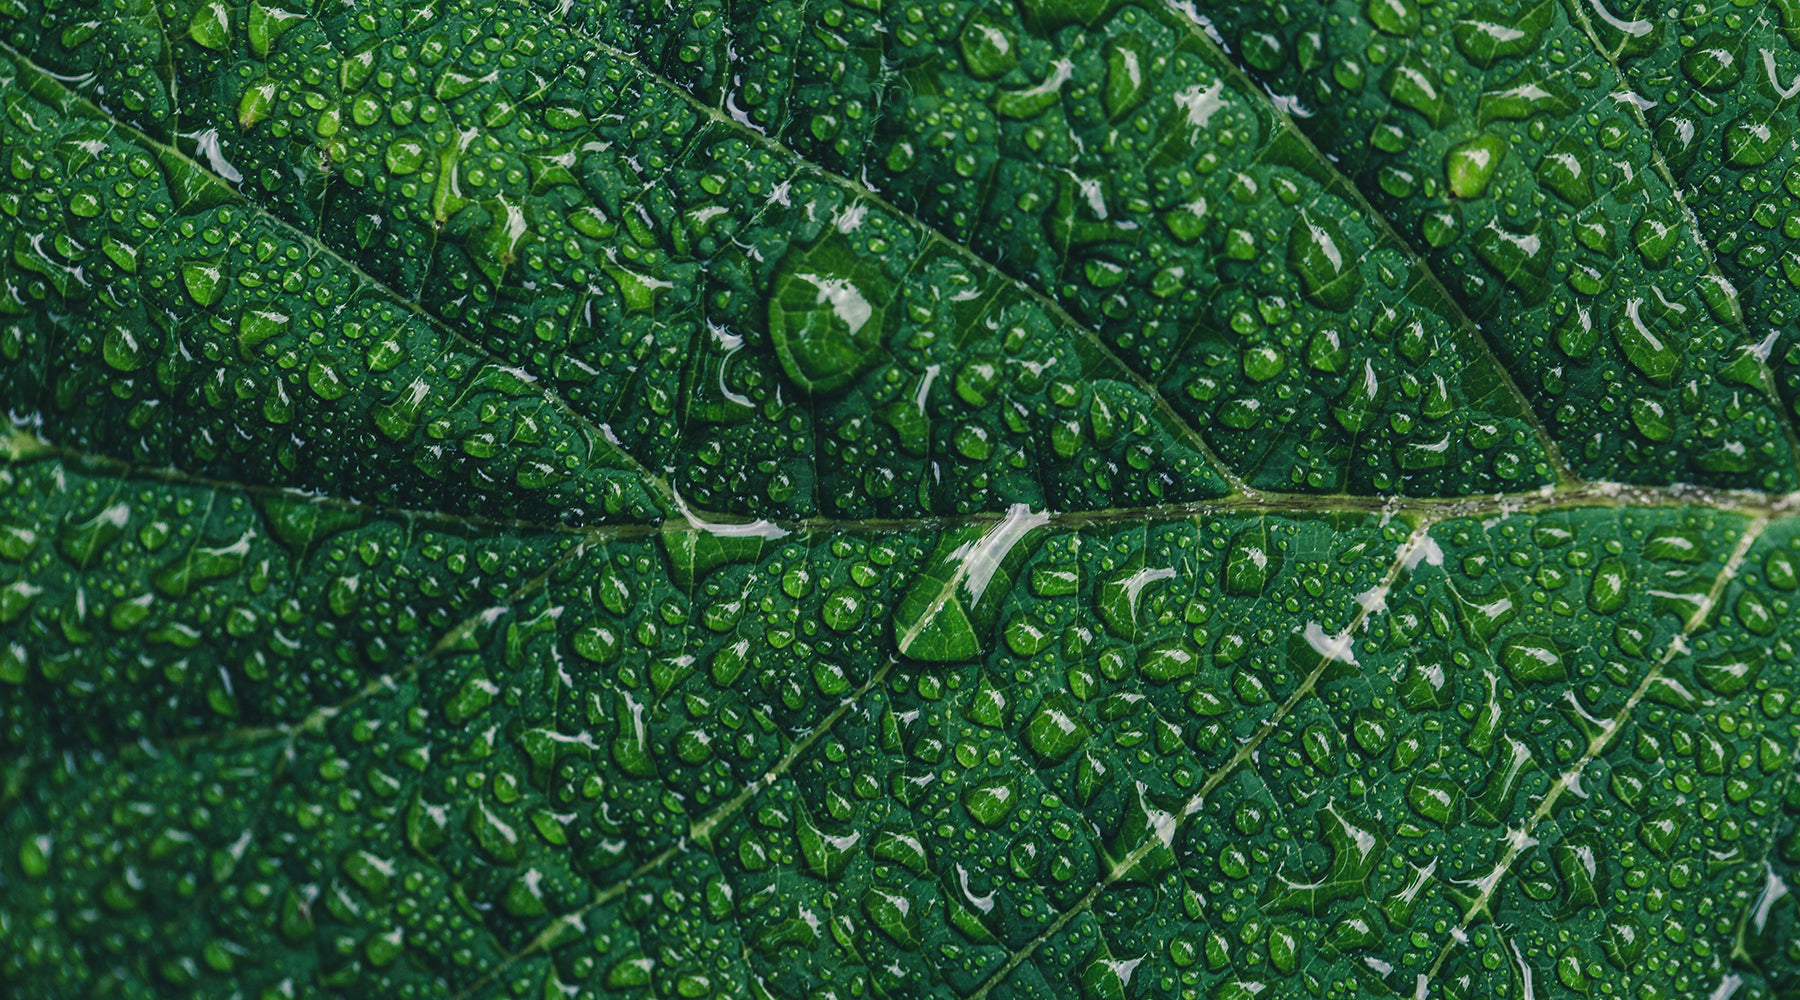 Water droplets on green leaf close up | Nikki Darling Australia